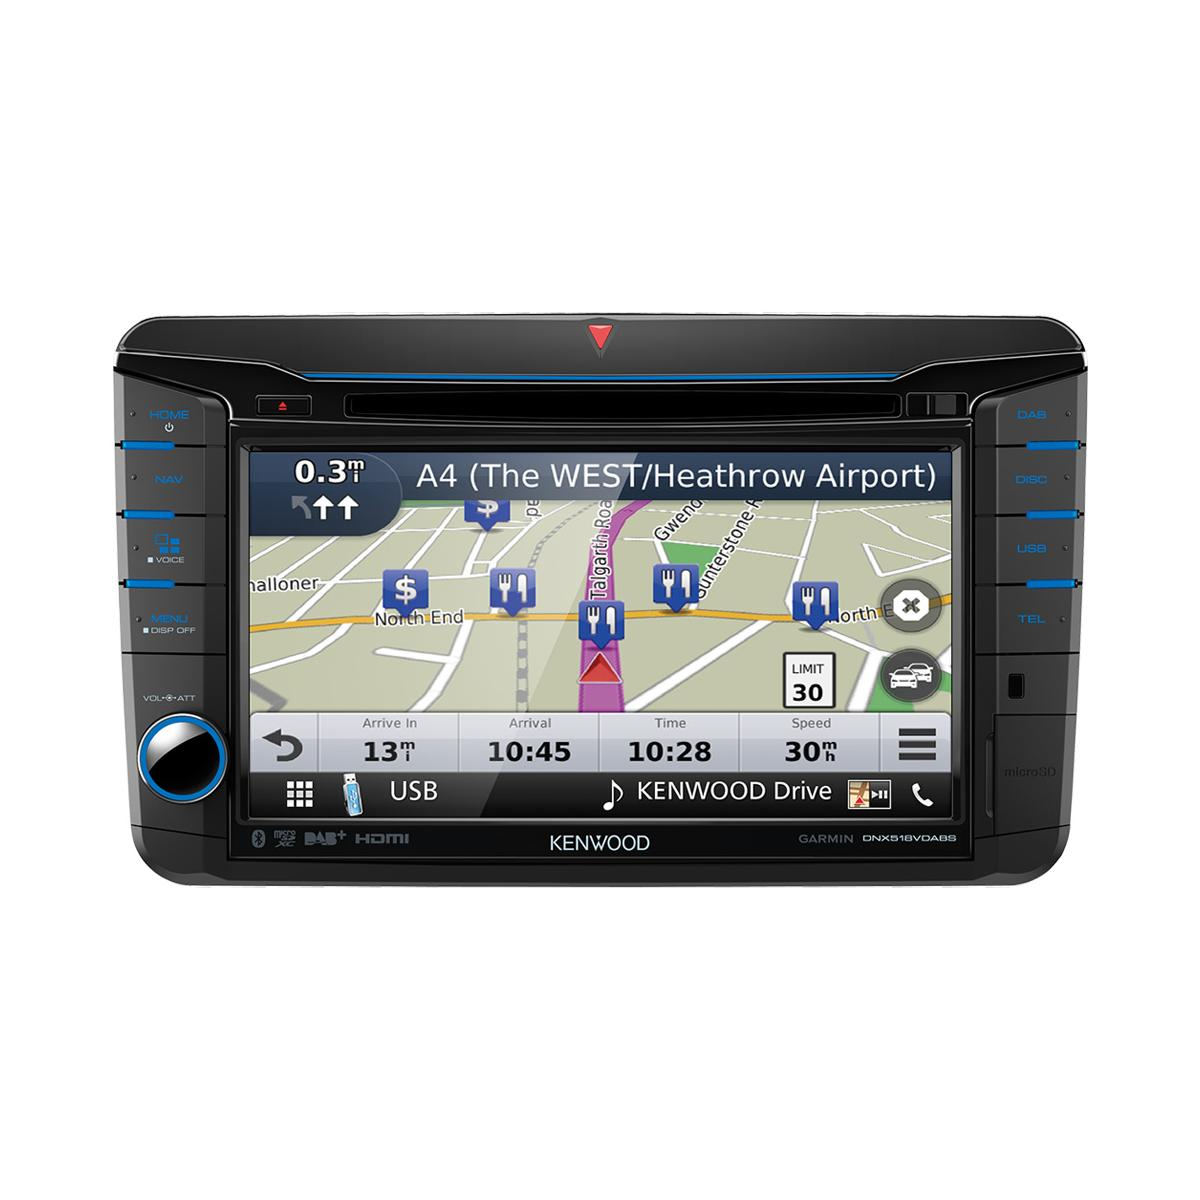 In Car Sat Nav Kenwood Car Audio DNX518VDABS 1